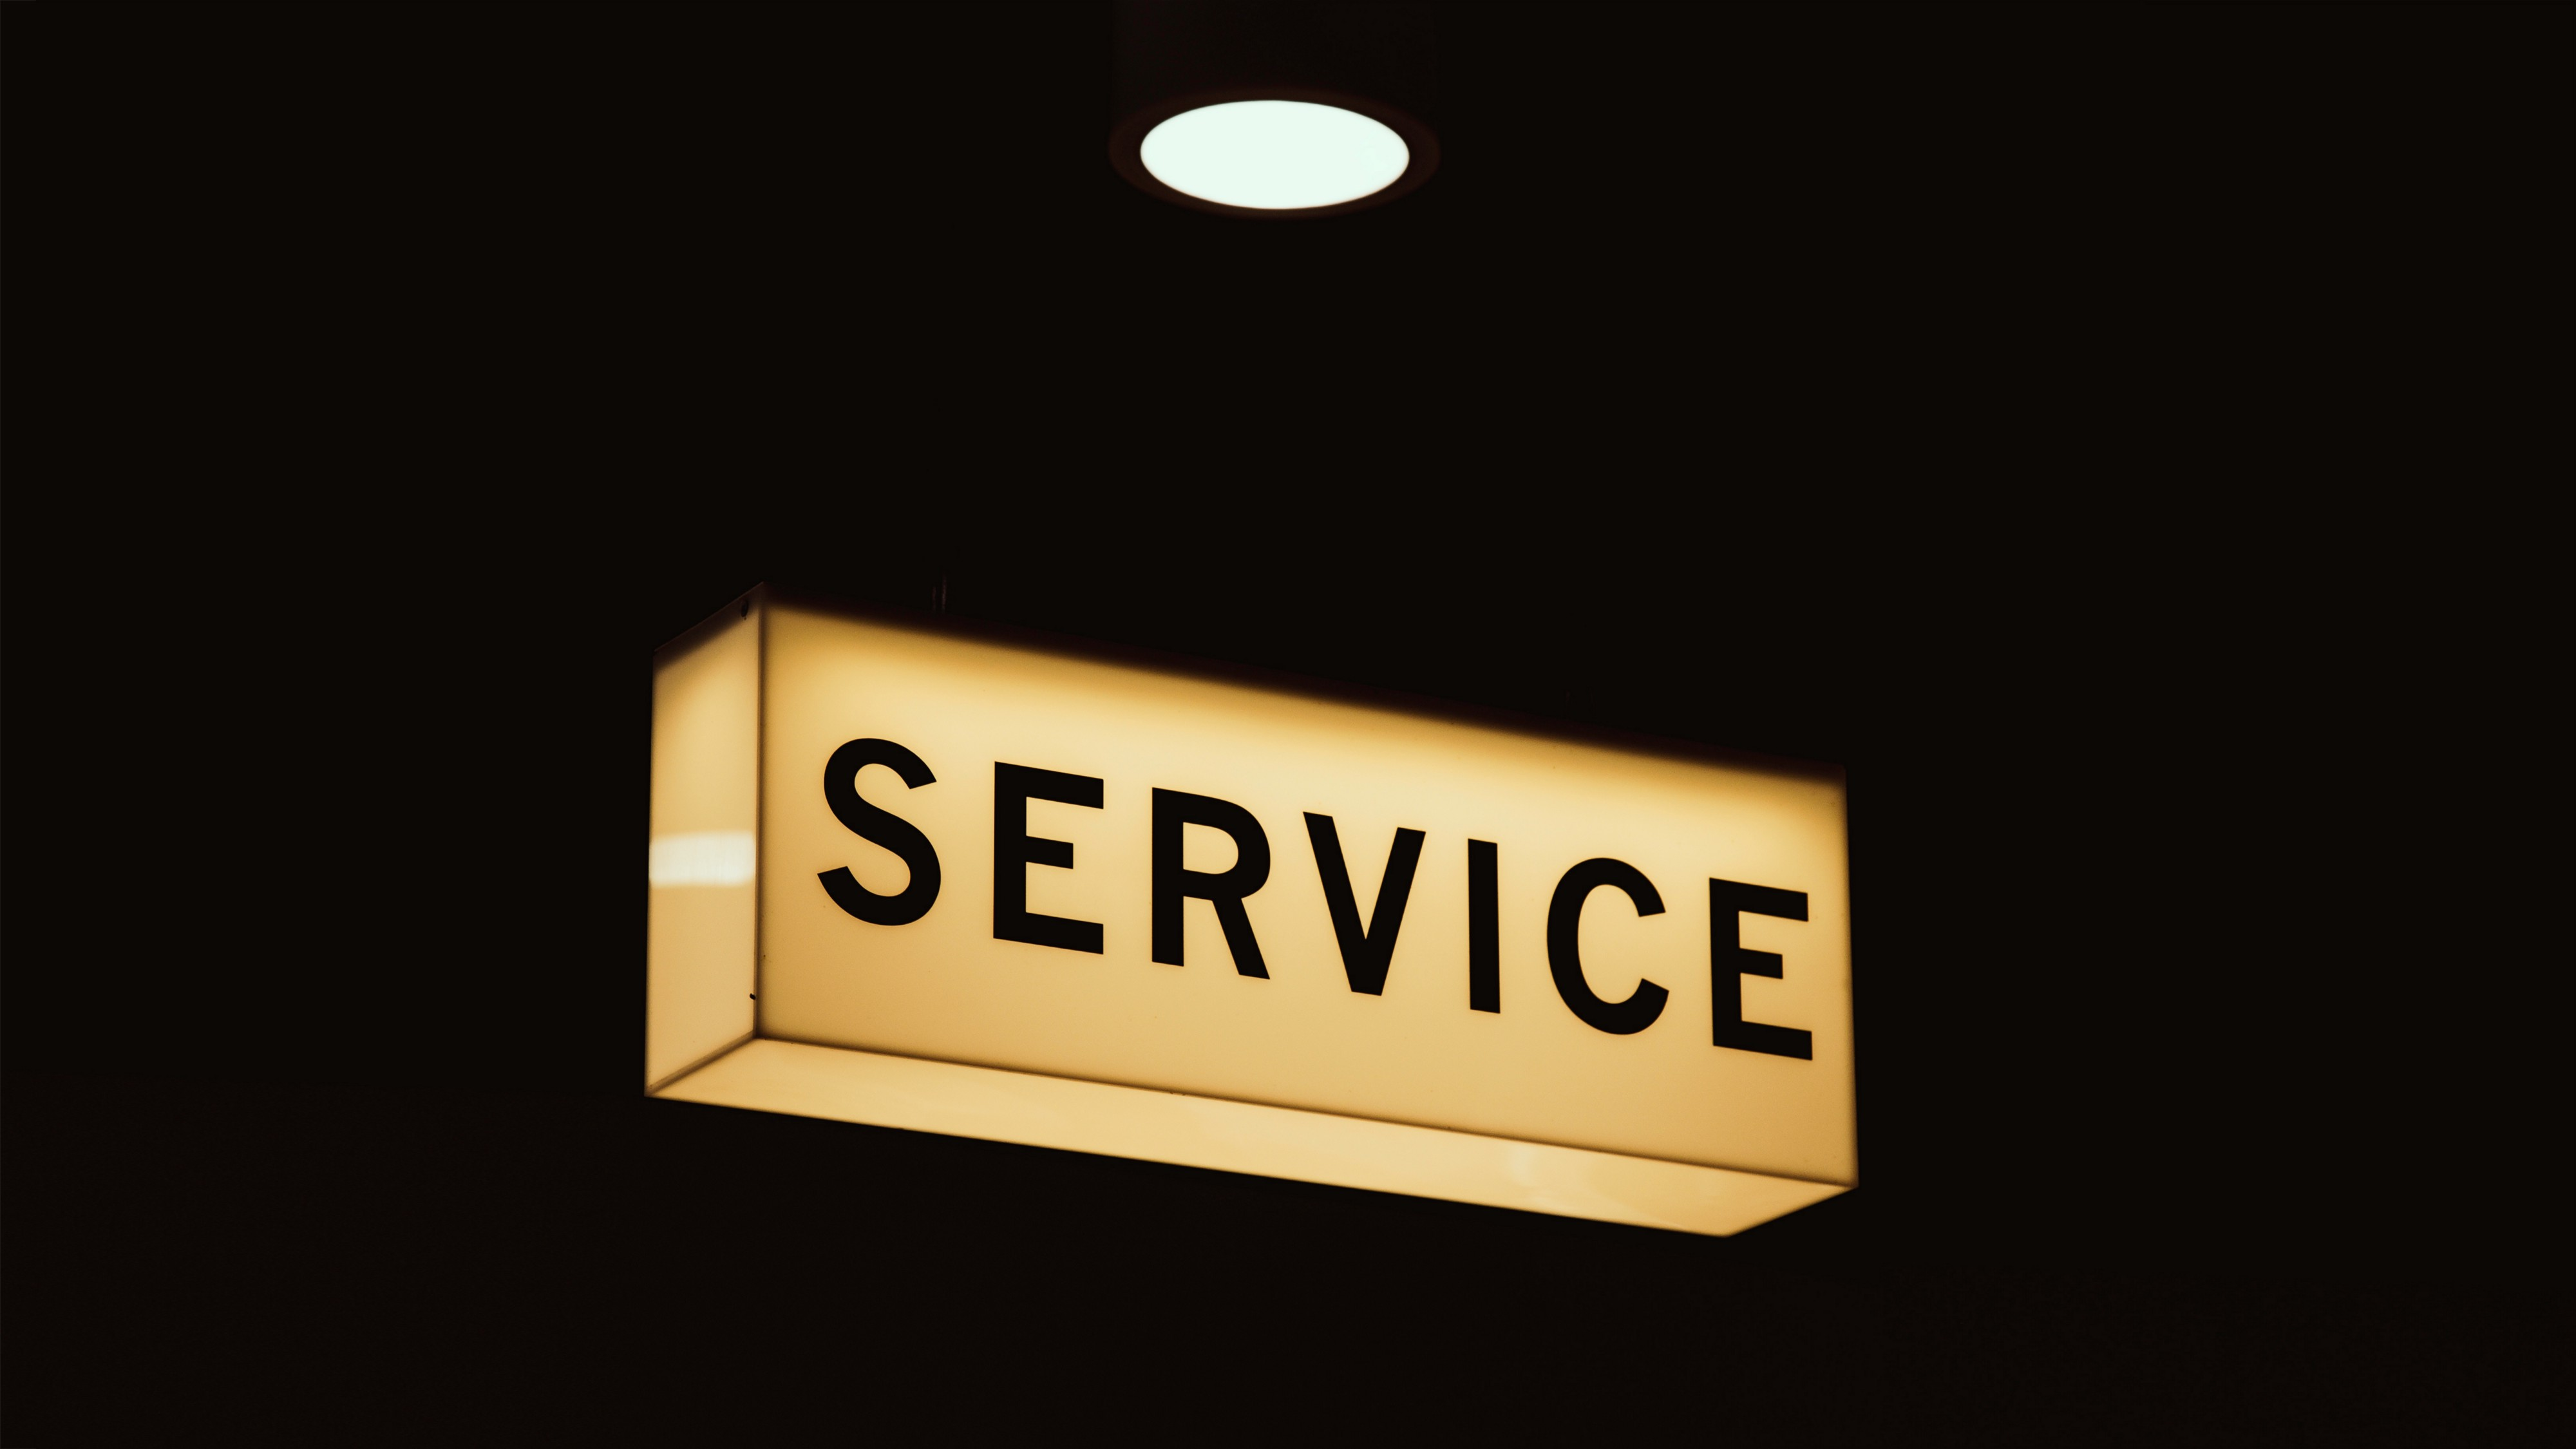 Service Discovery as a Service is the missing serverless